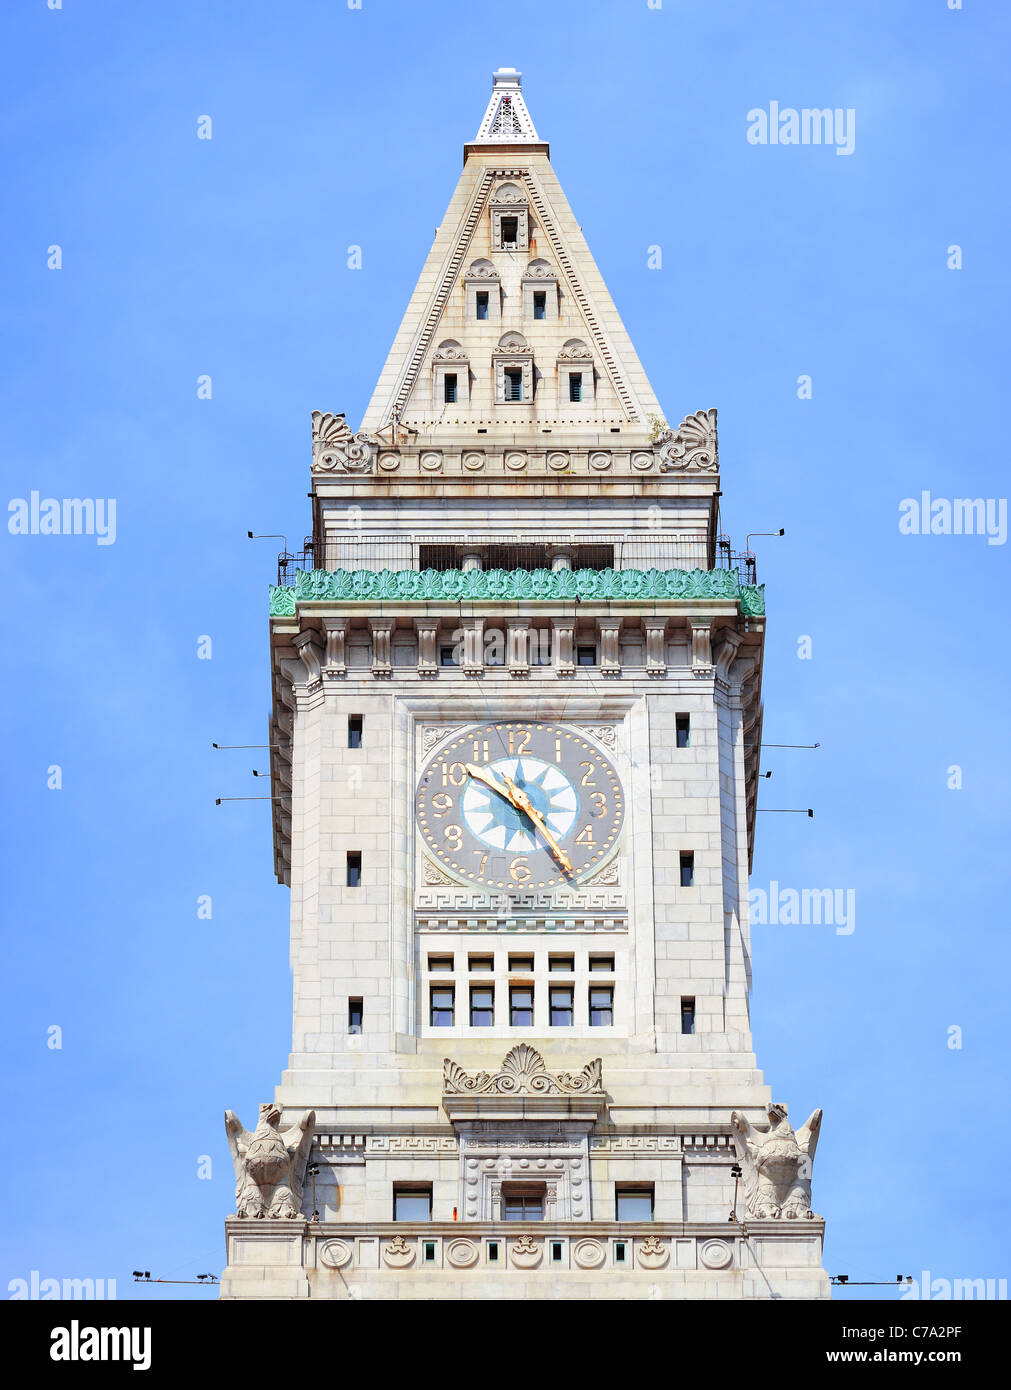 Custom House Boston High Resolution Stock Photography And Images Alamy